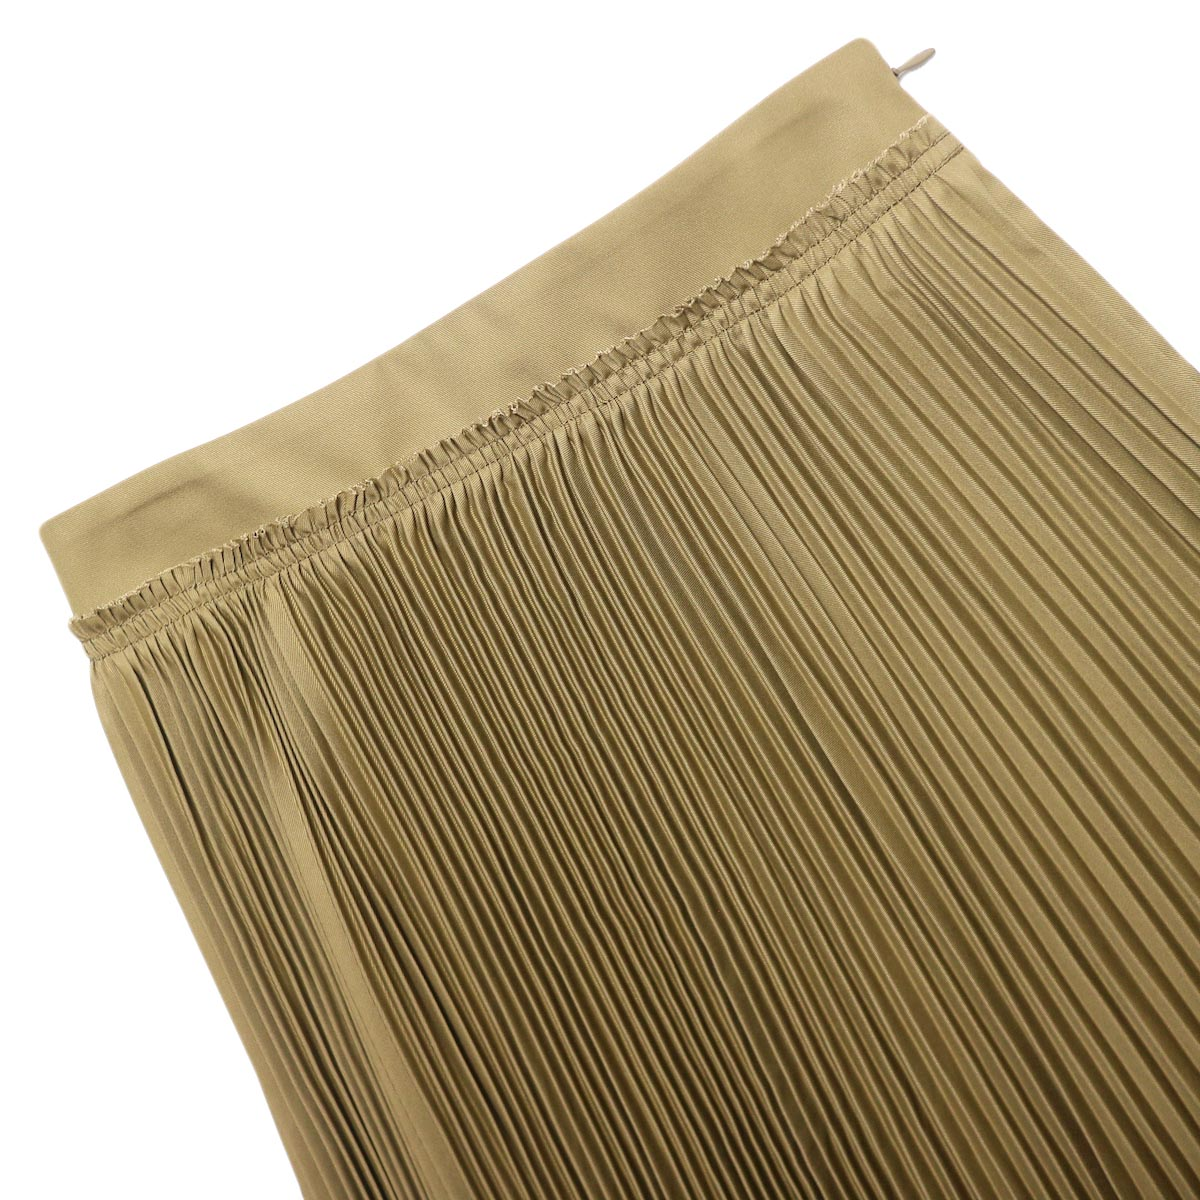 YLEVE / CHINO PLEATS SKIRT (beige) ウエスト